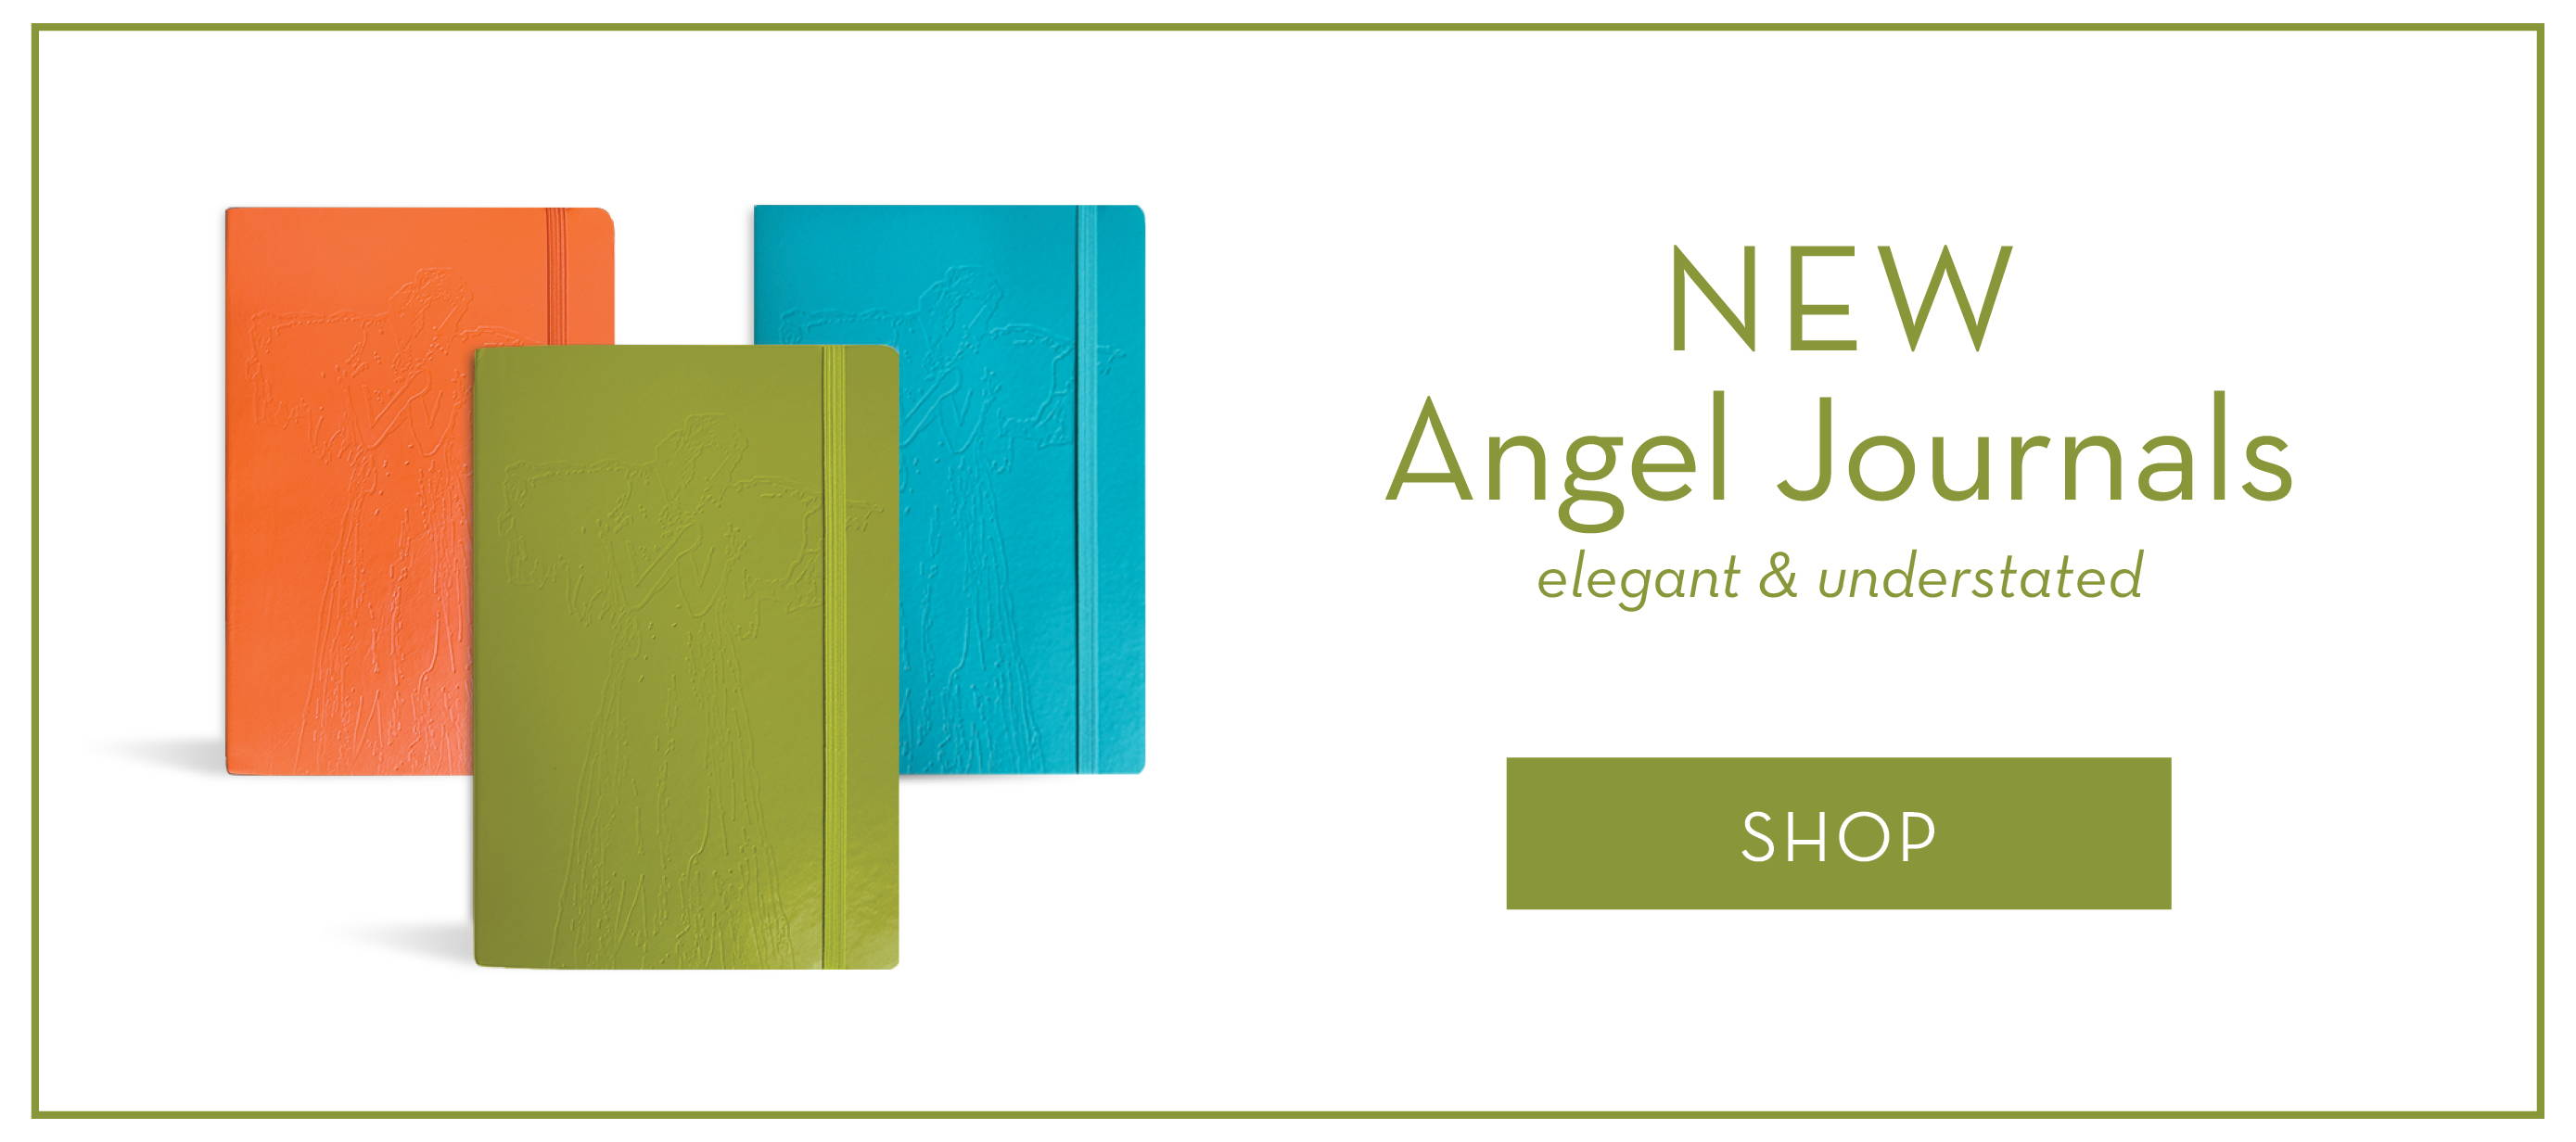 An image of three different colored journals, green, orange and blue, with a debossed angel on the cover and a link to purchase